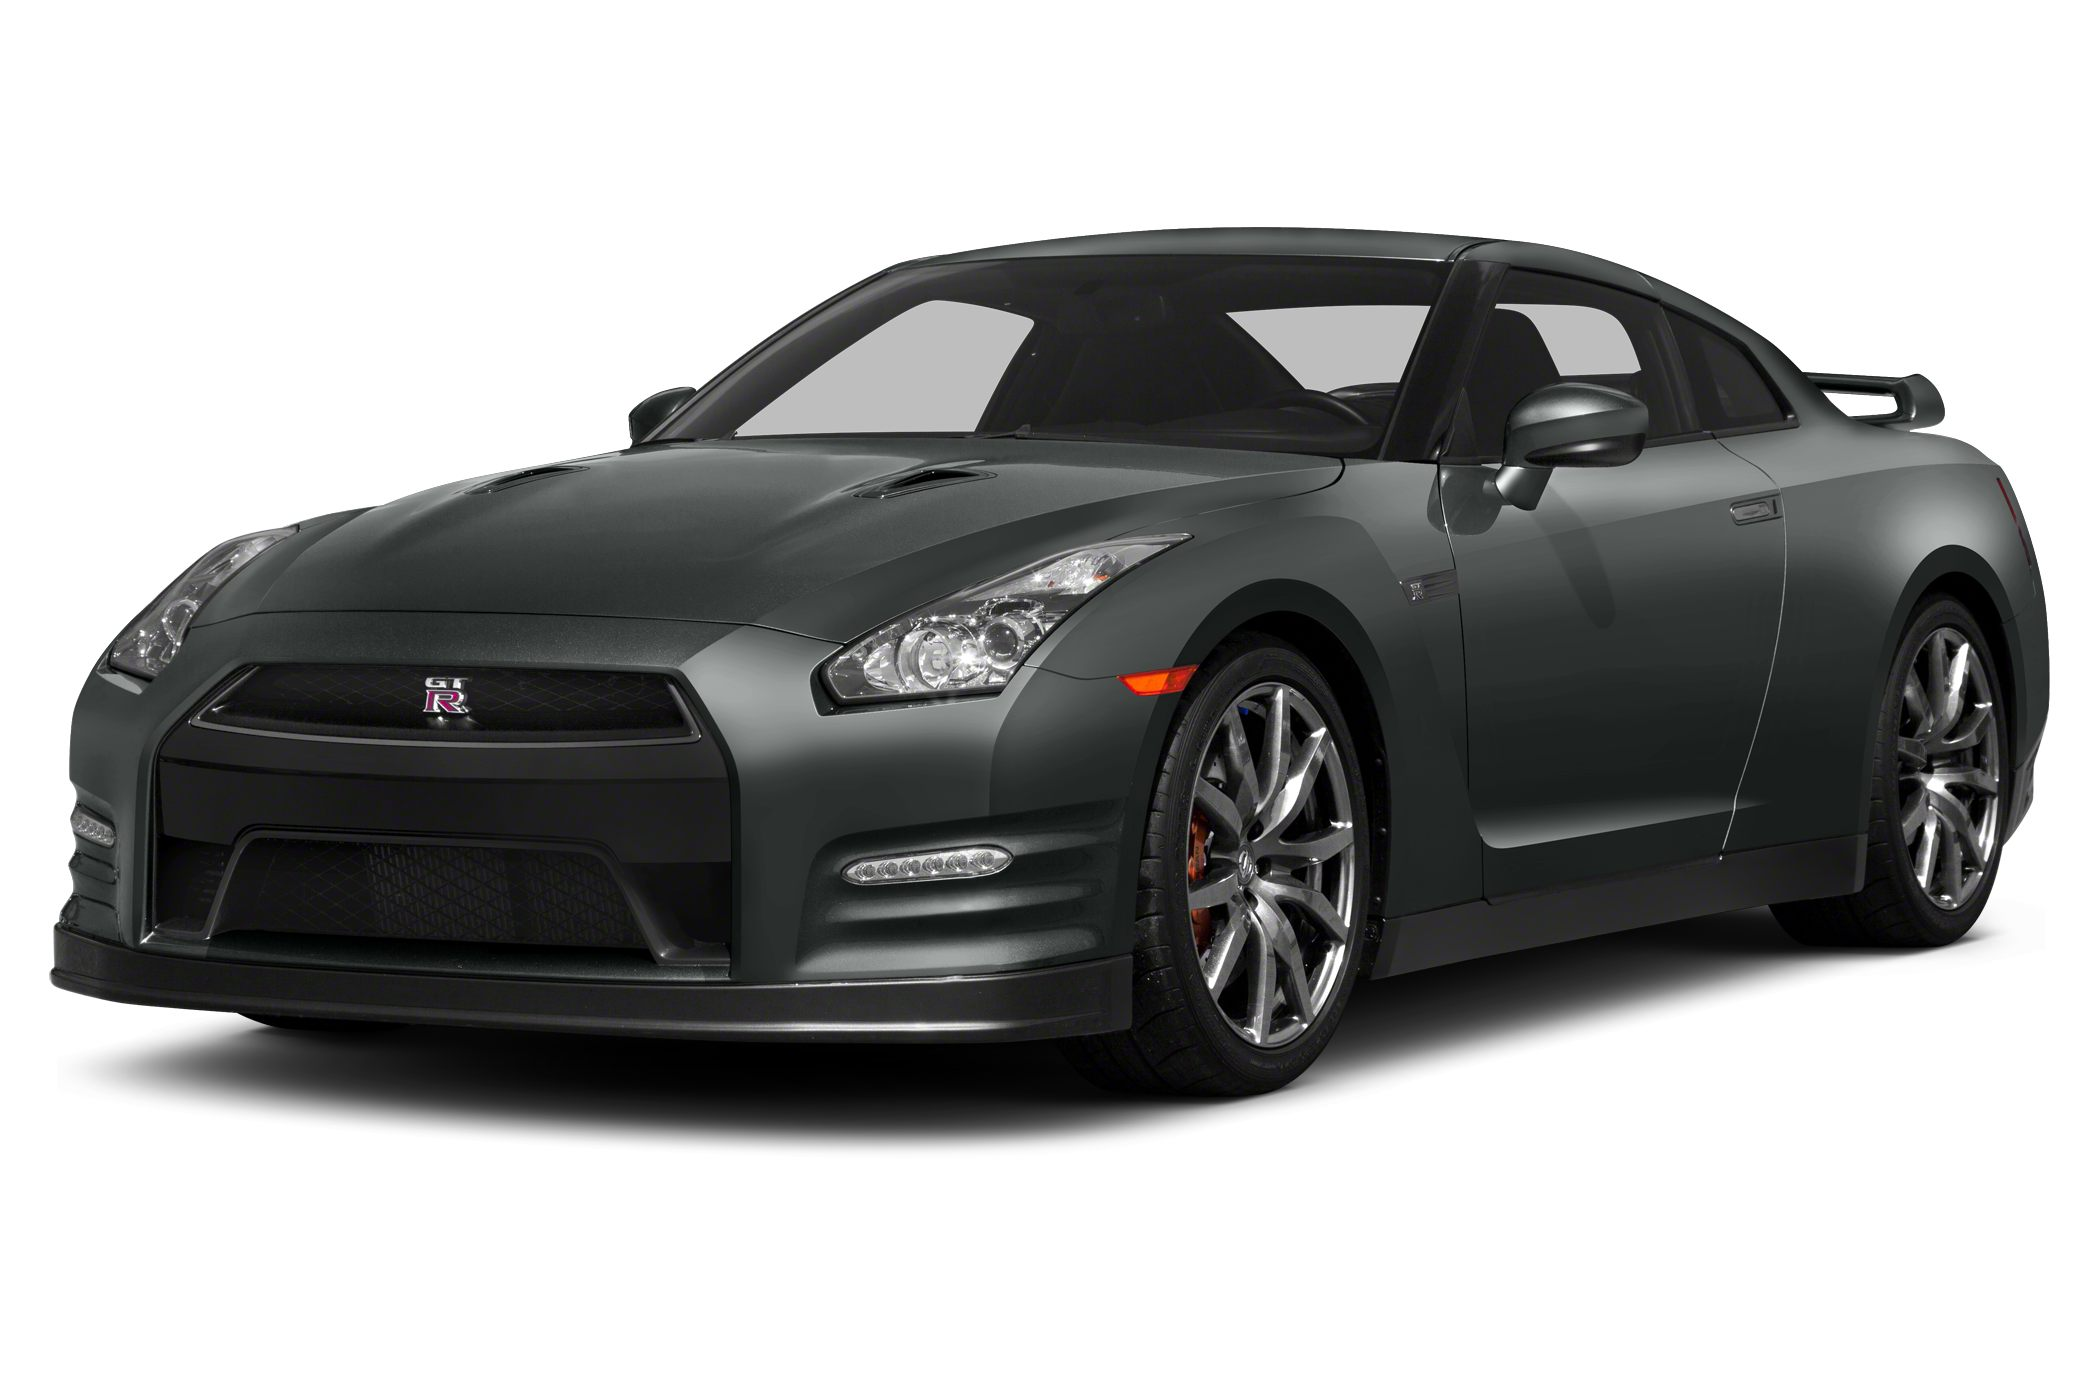 2014 Nissan GT-R Black Edition Coupe for sale in Ashland for $90,000 with 0 miles